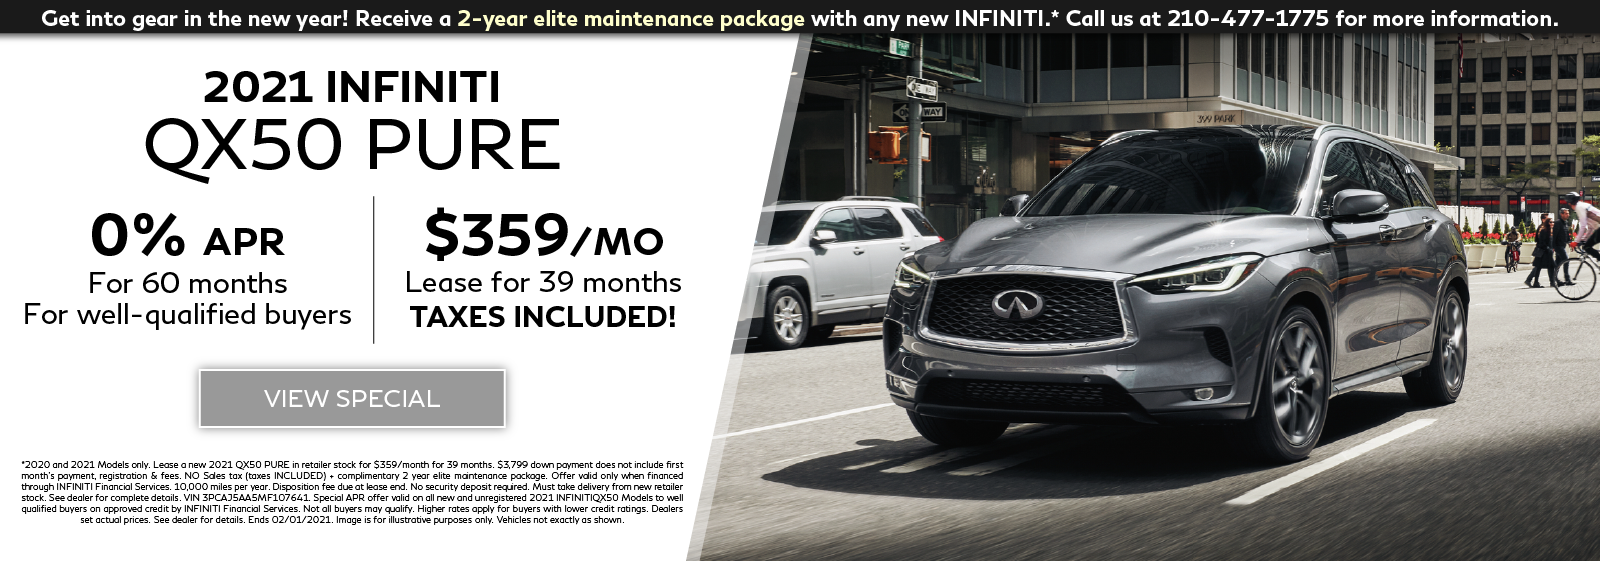 Well-qualified customers can lease a new 2021 QX50 PURE for $359 per month for 39 months OR get 0% APR financing for 60 months plus get a 2-year elite maintentenance package. Click to view special.